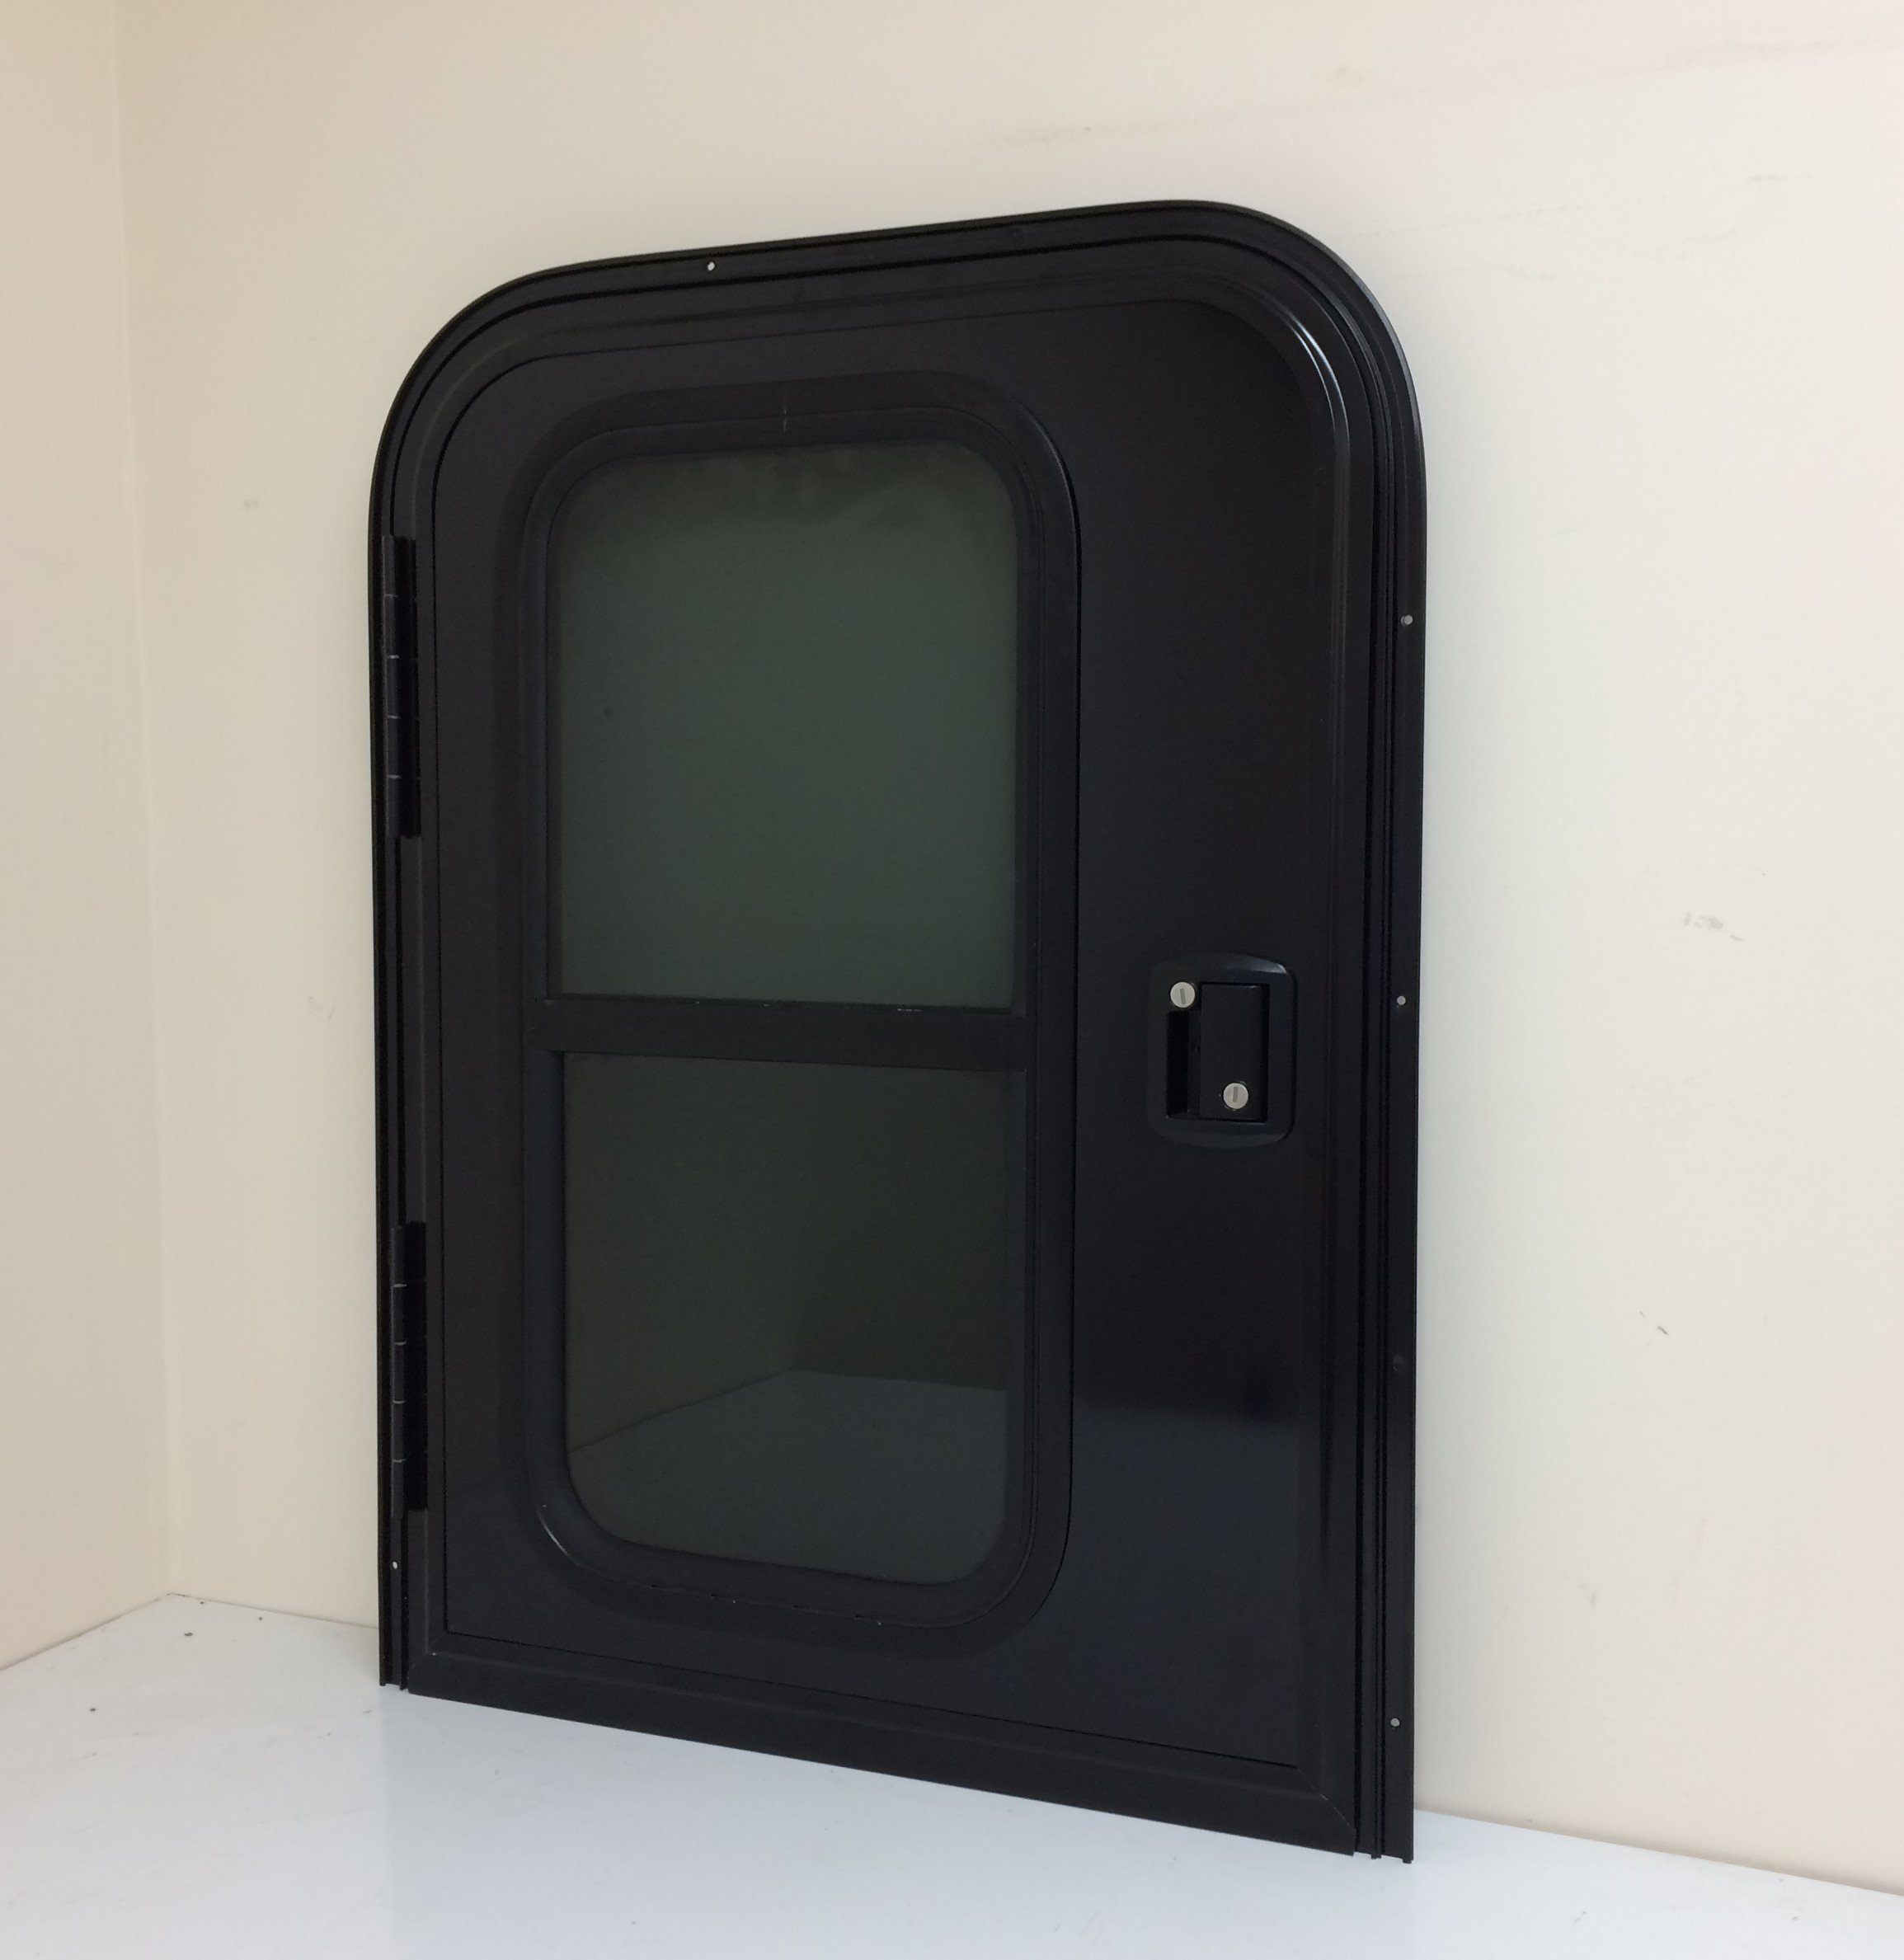 RV Teardrop WD29 26'' x 36'' Face Mount Foam Core Driver's Side Door with Radius Corners on Top and Square Bottom with threshold